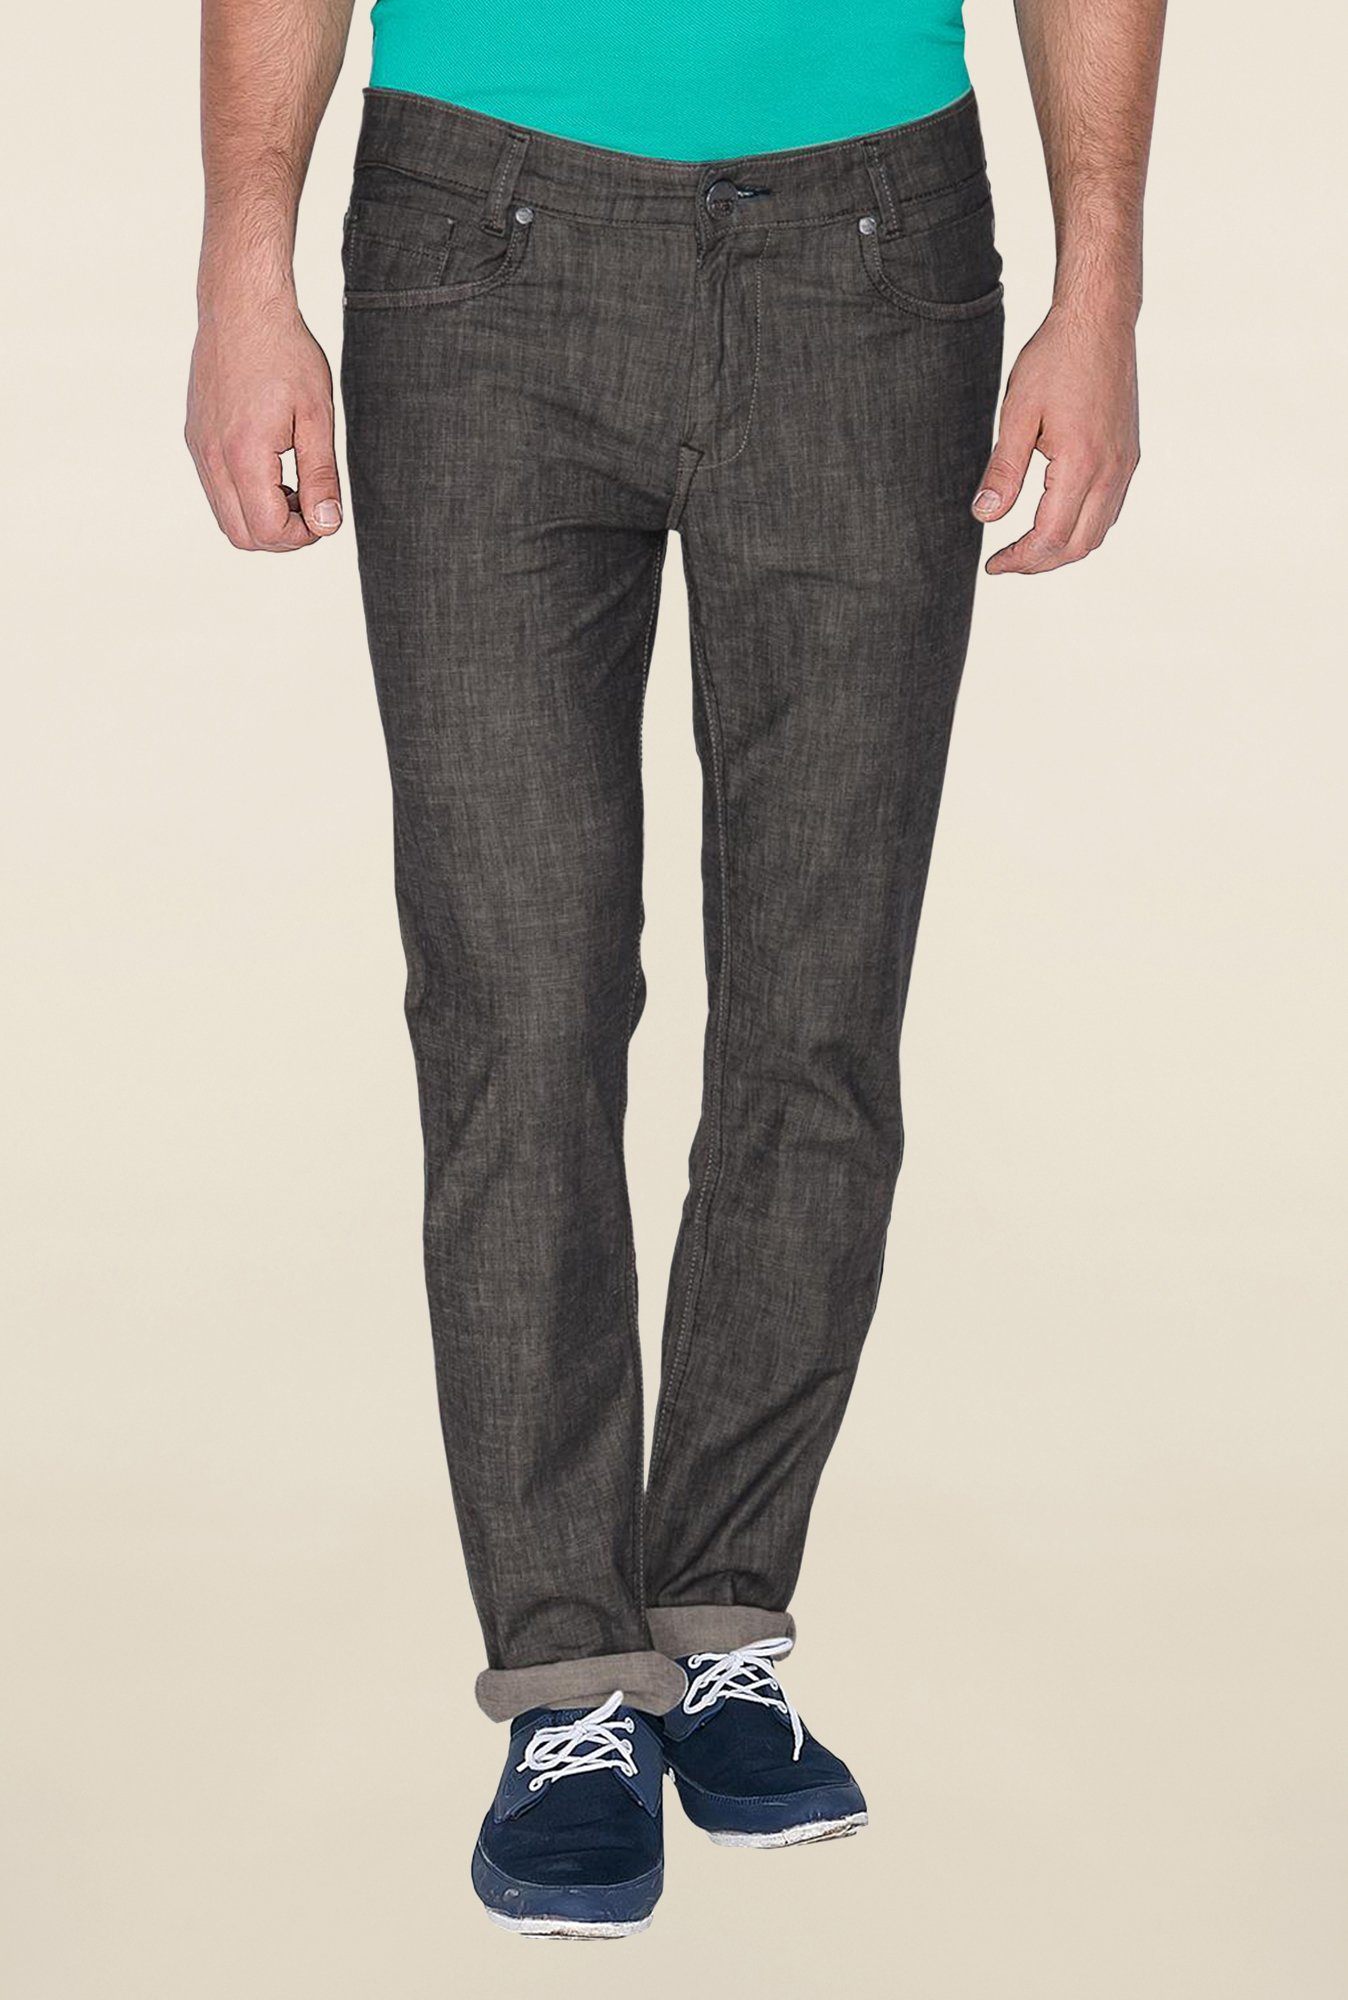 Mufti Grey Solid Rinse Washed Jeans